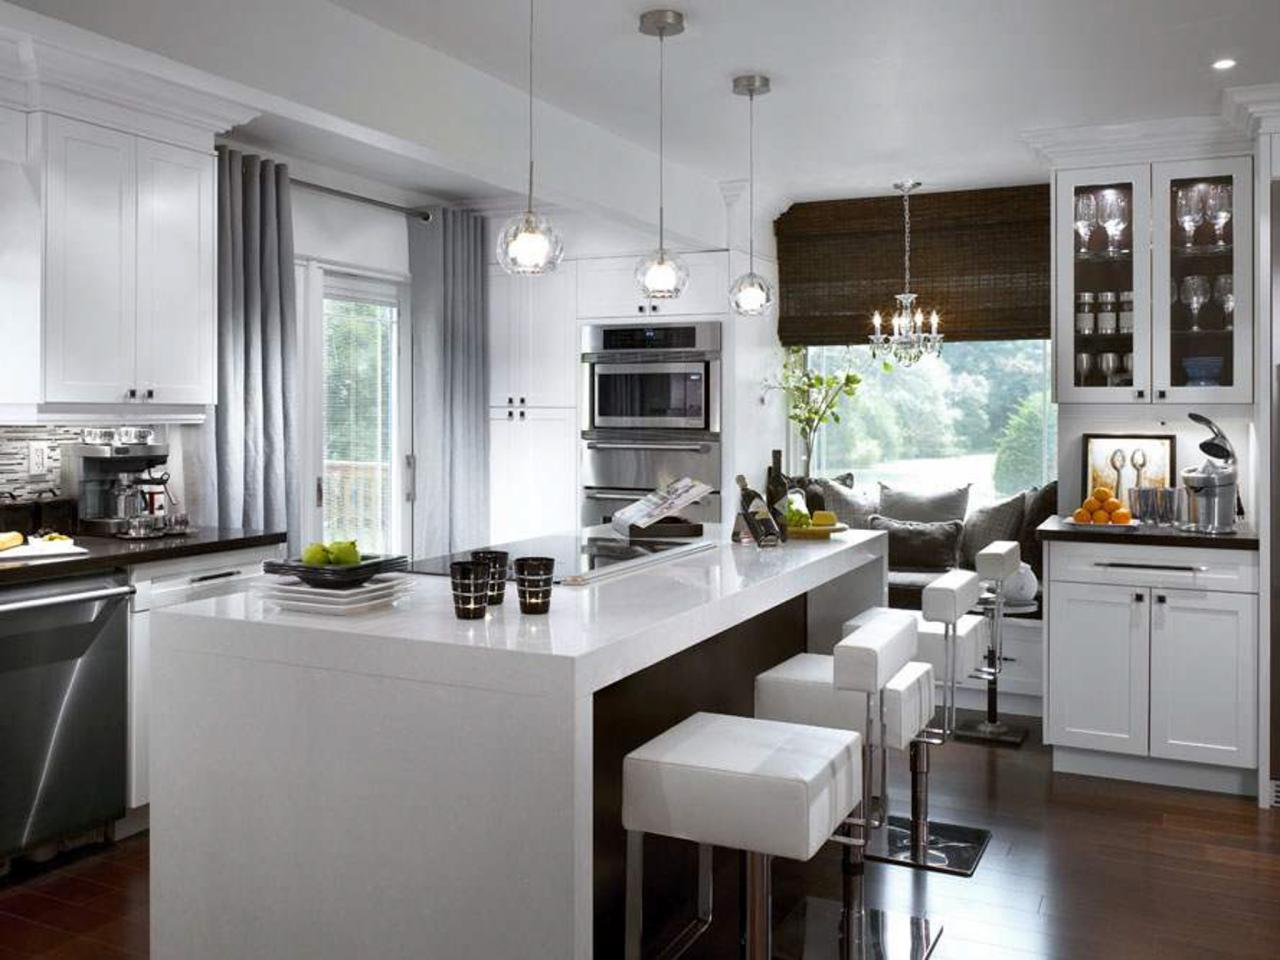 Etonnant Amazing Kitchen Ideas With Contemporary Window Valances And Grey Drapes And  Bamboo Shades Plus Leather Bar